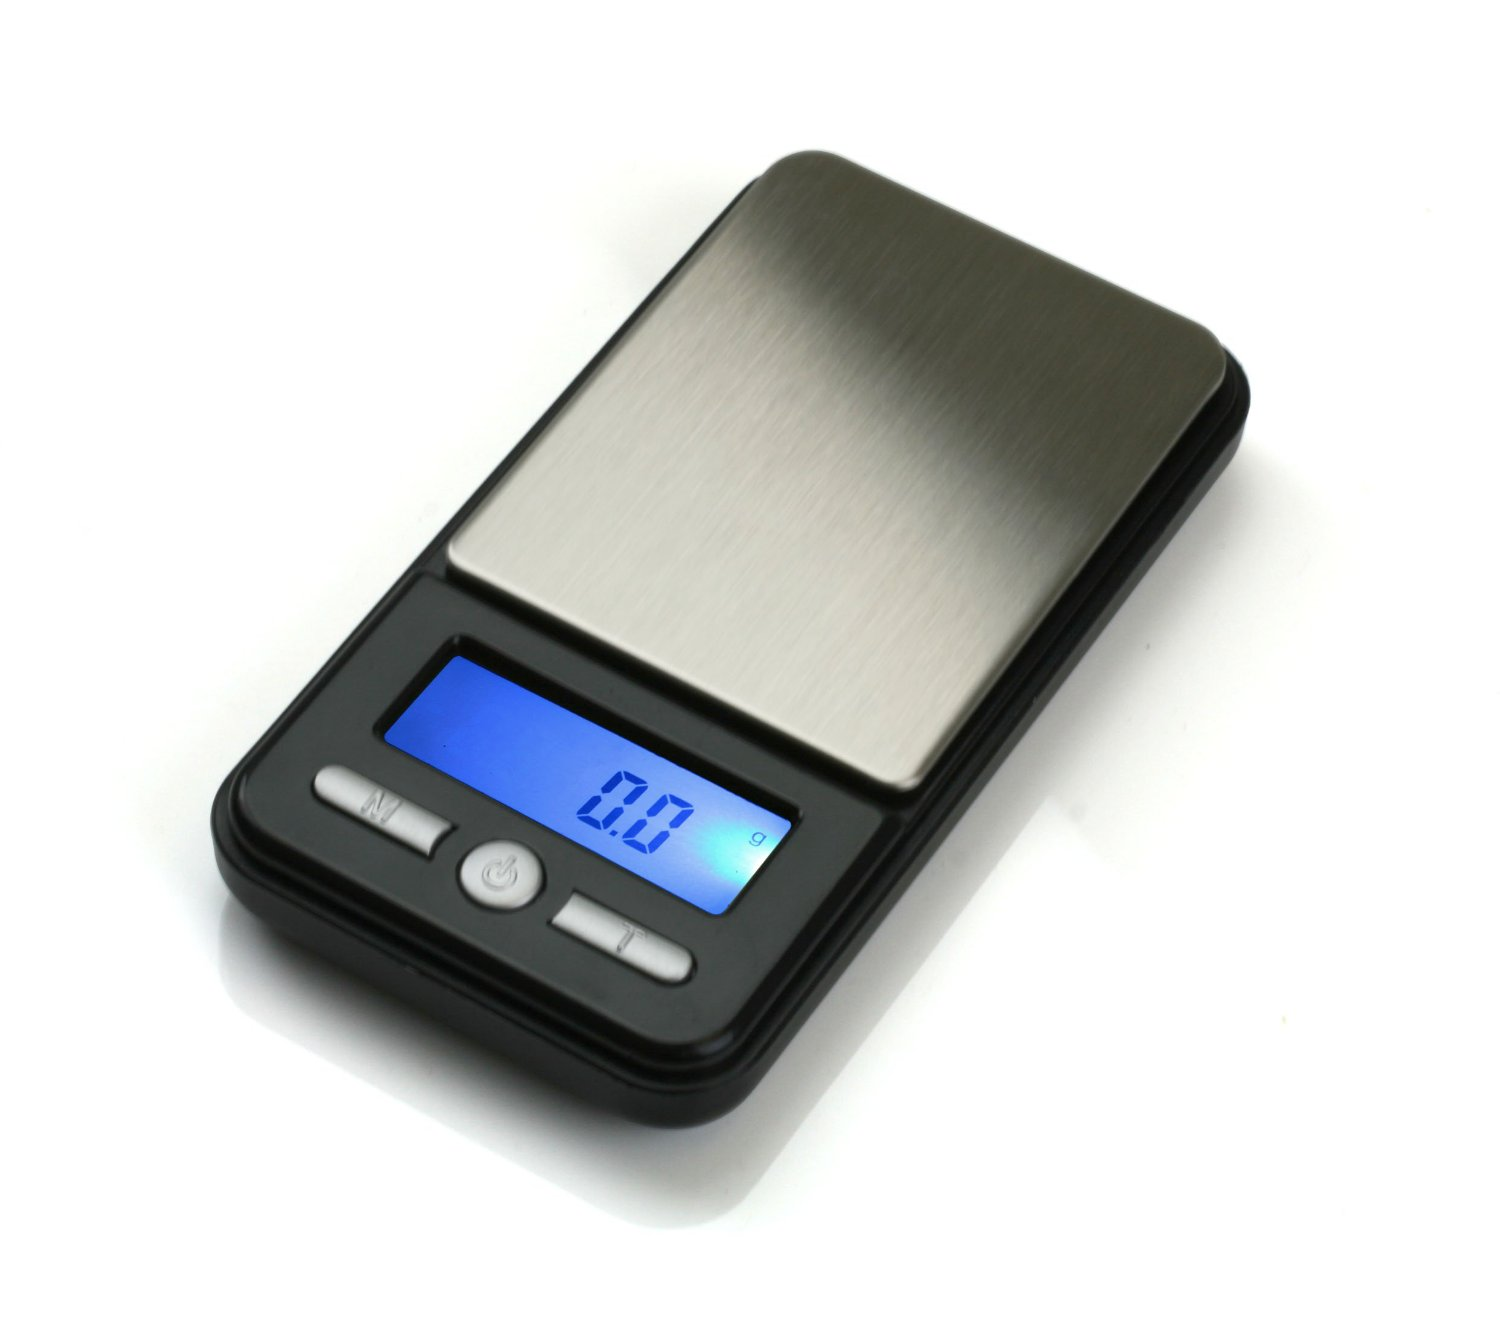 Ac-650 Digital Pocket Gram Scale, Black, 650 G X 0.1 G, Ship from USA,Brand American Weigh Scale by